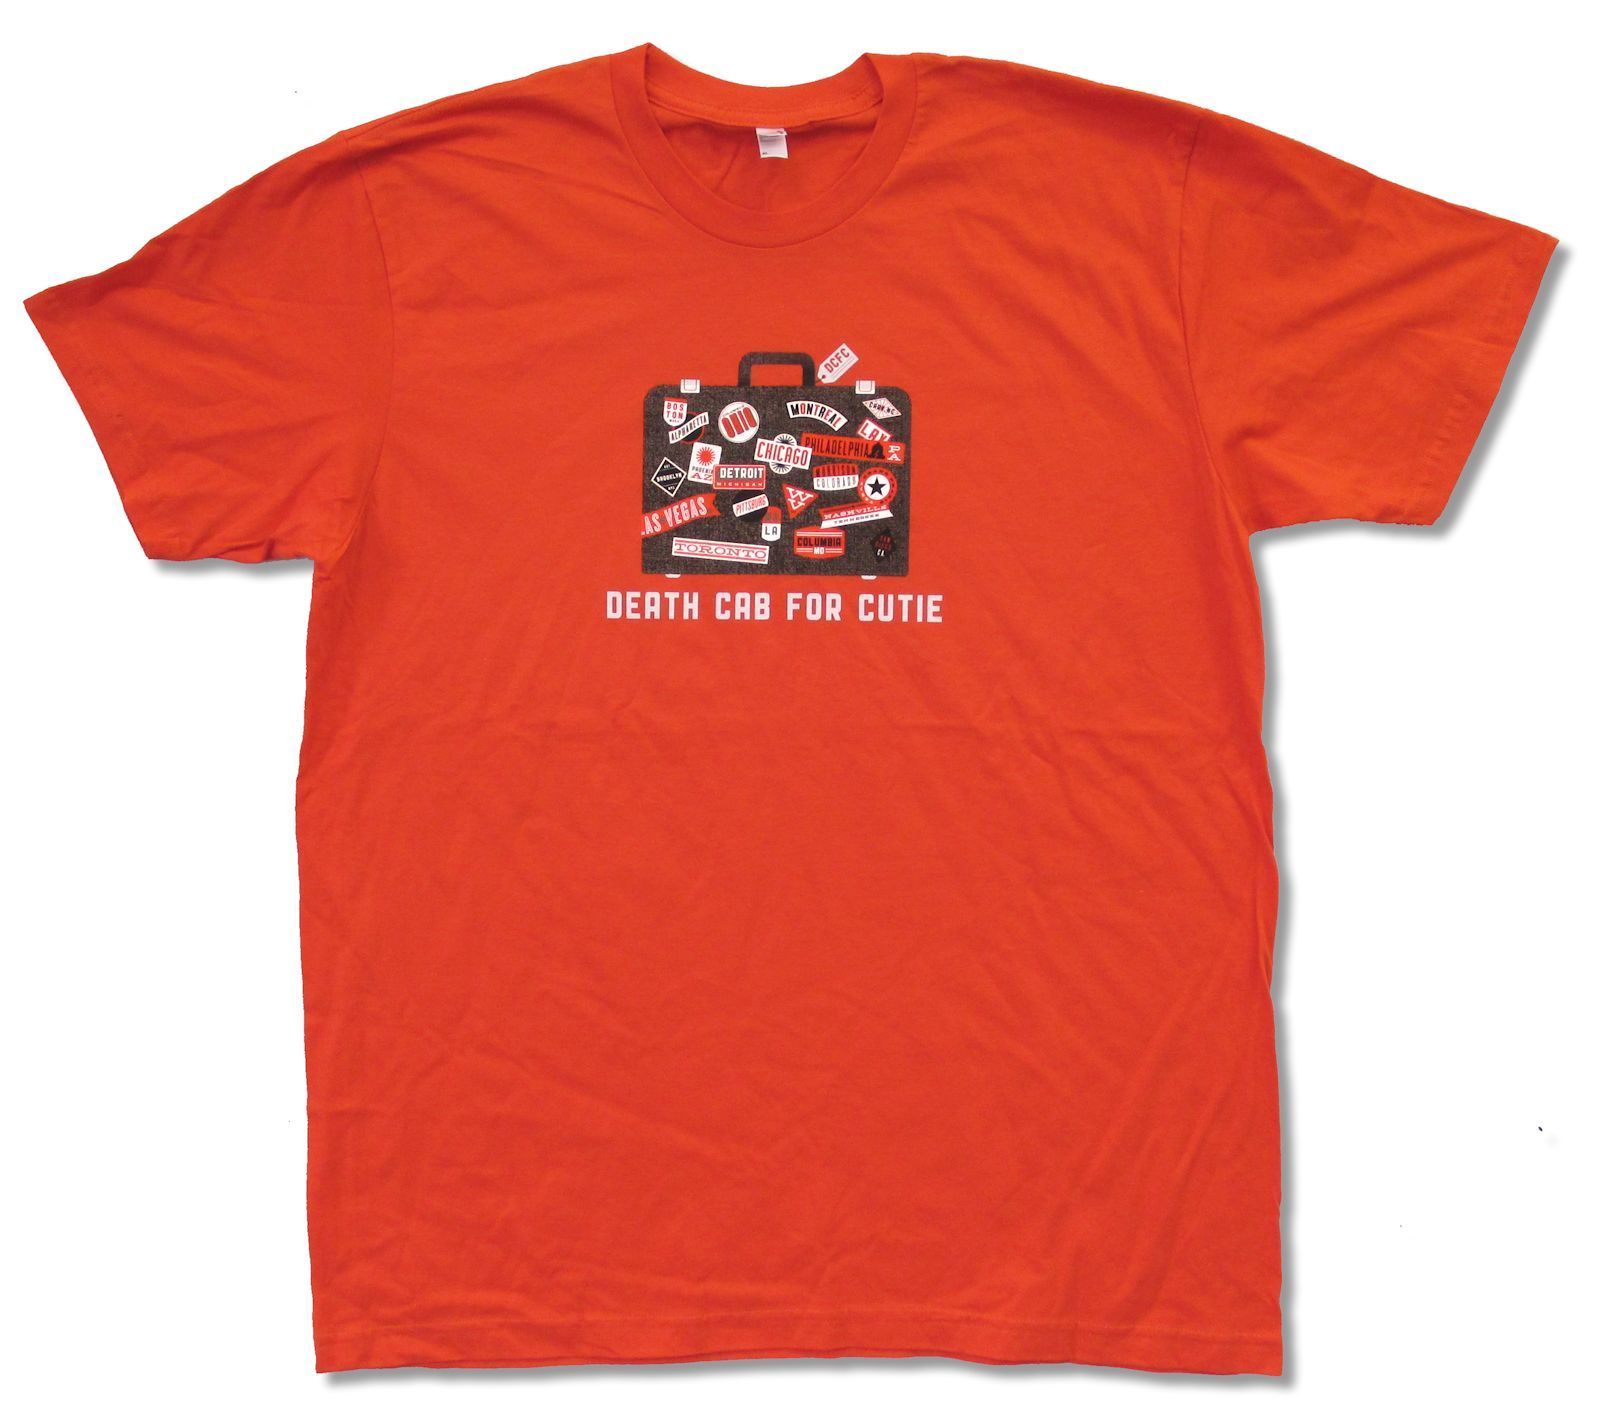 DEATH CAB FOR CUTIE - SUITCASE ON ORANGE T-SHIRT NEW OFFICIAL ADULT XL